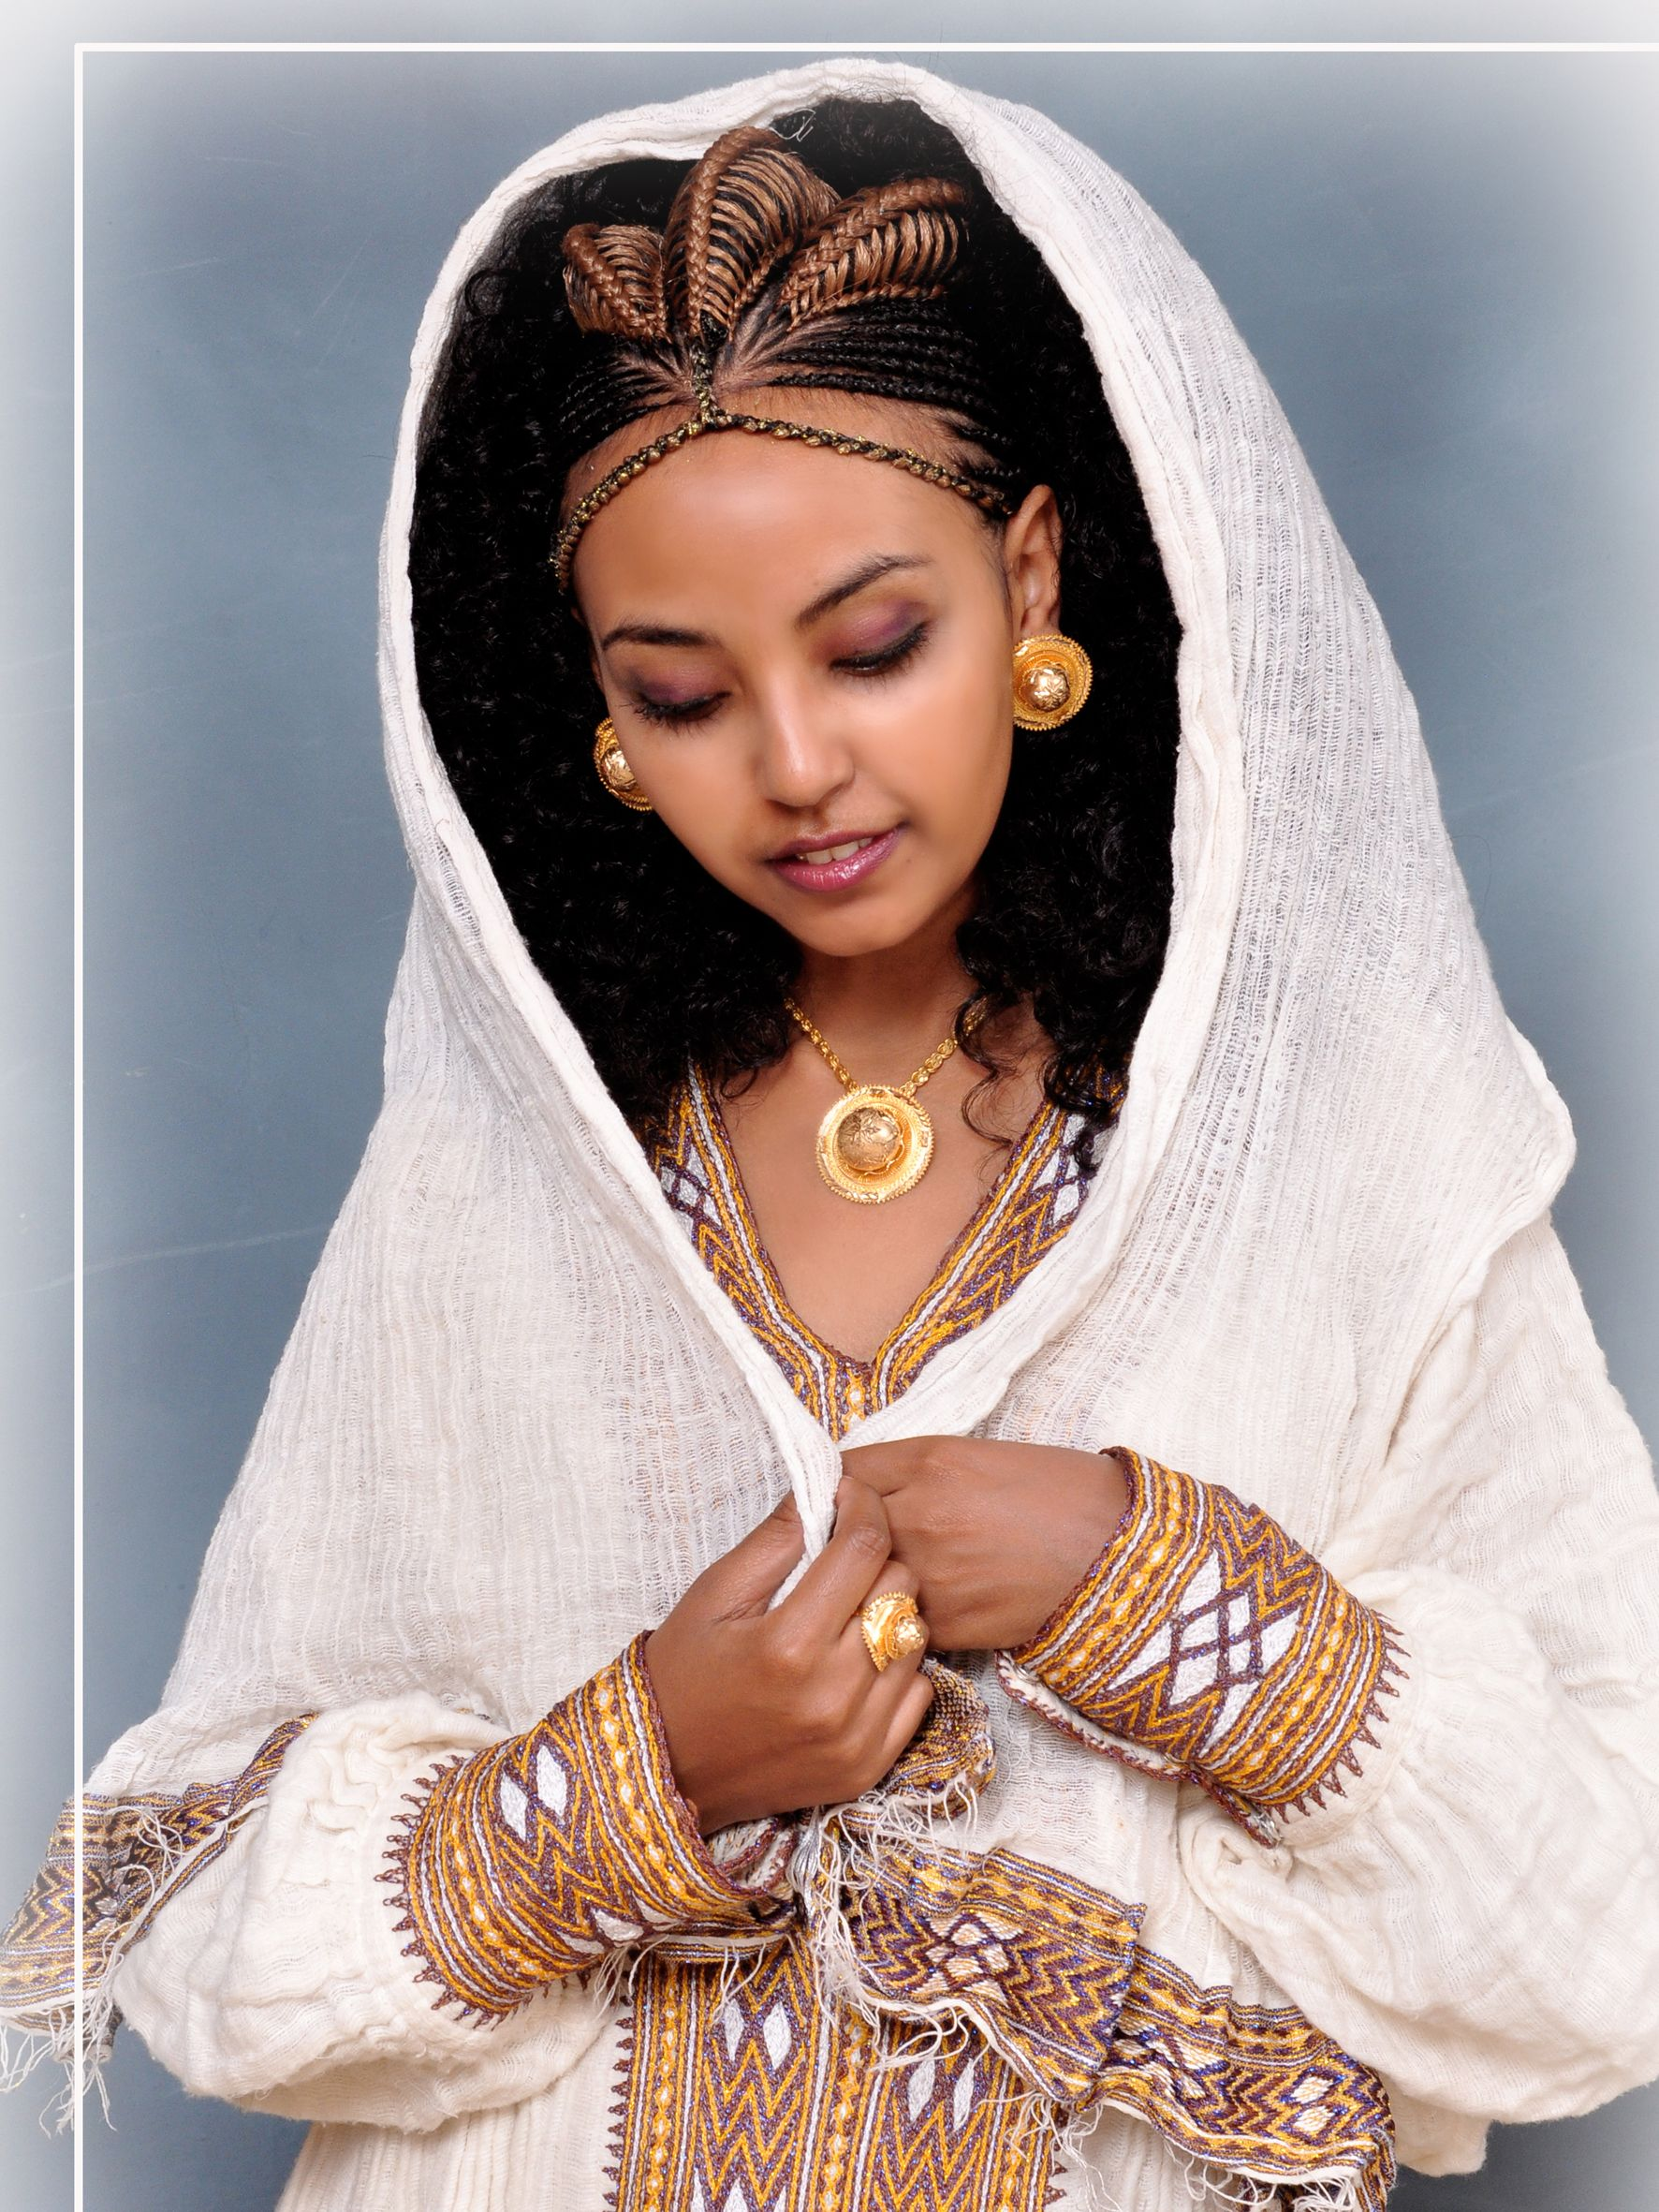 Pin by Ruhama Chernet on Habesha Bride | Pinterest ...